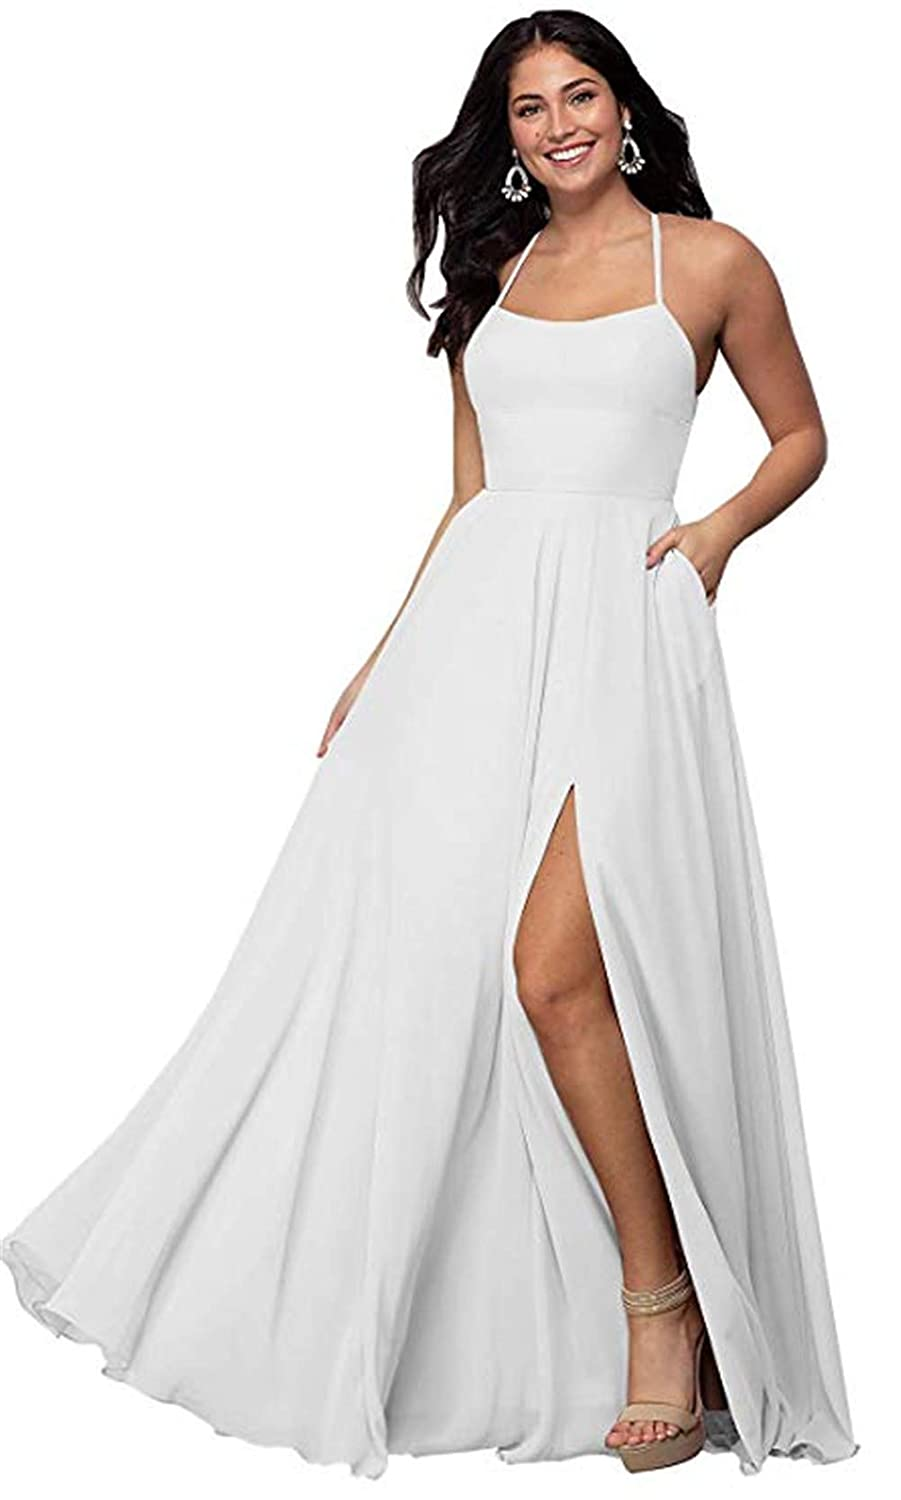 White Halter A Line Long Bridesmaid Dresses Split Prom Evening Gowns with Pocket